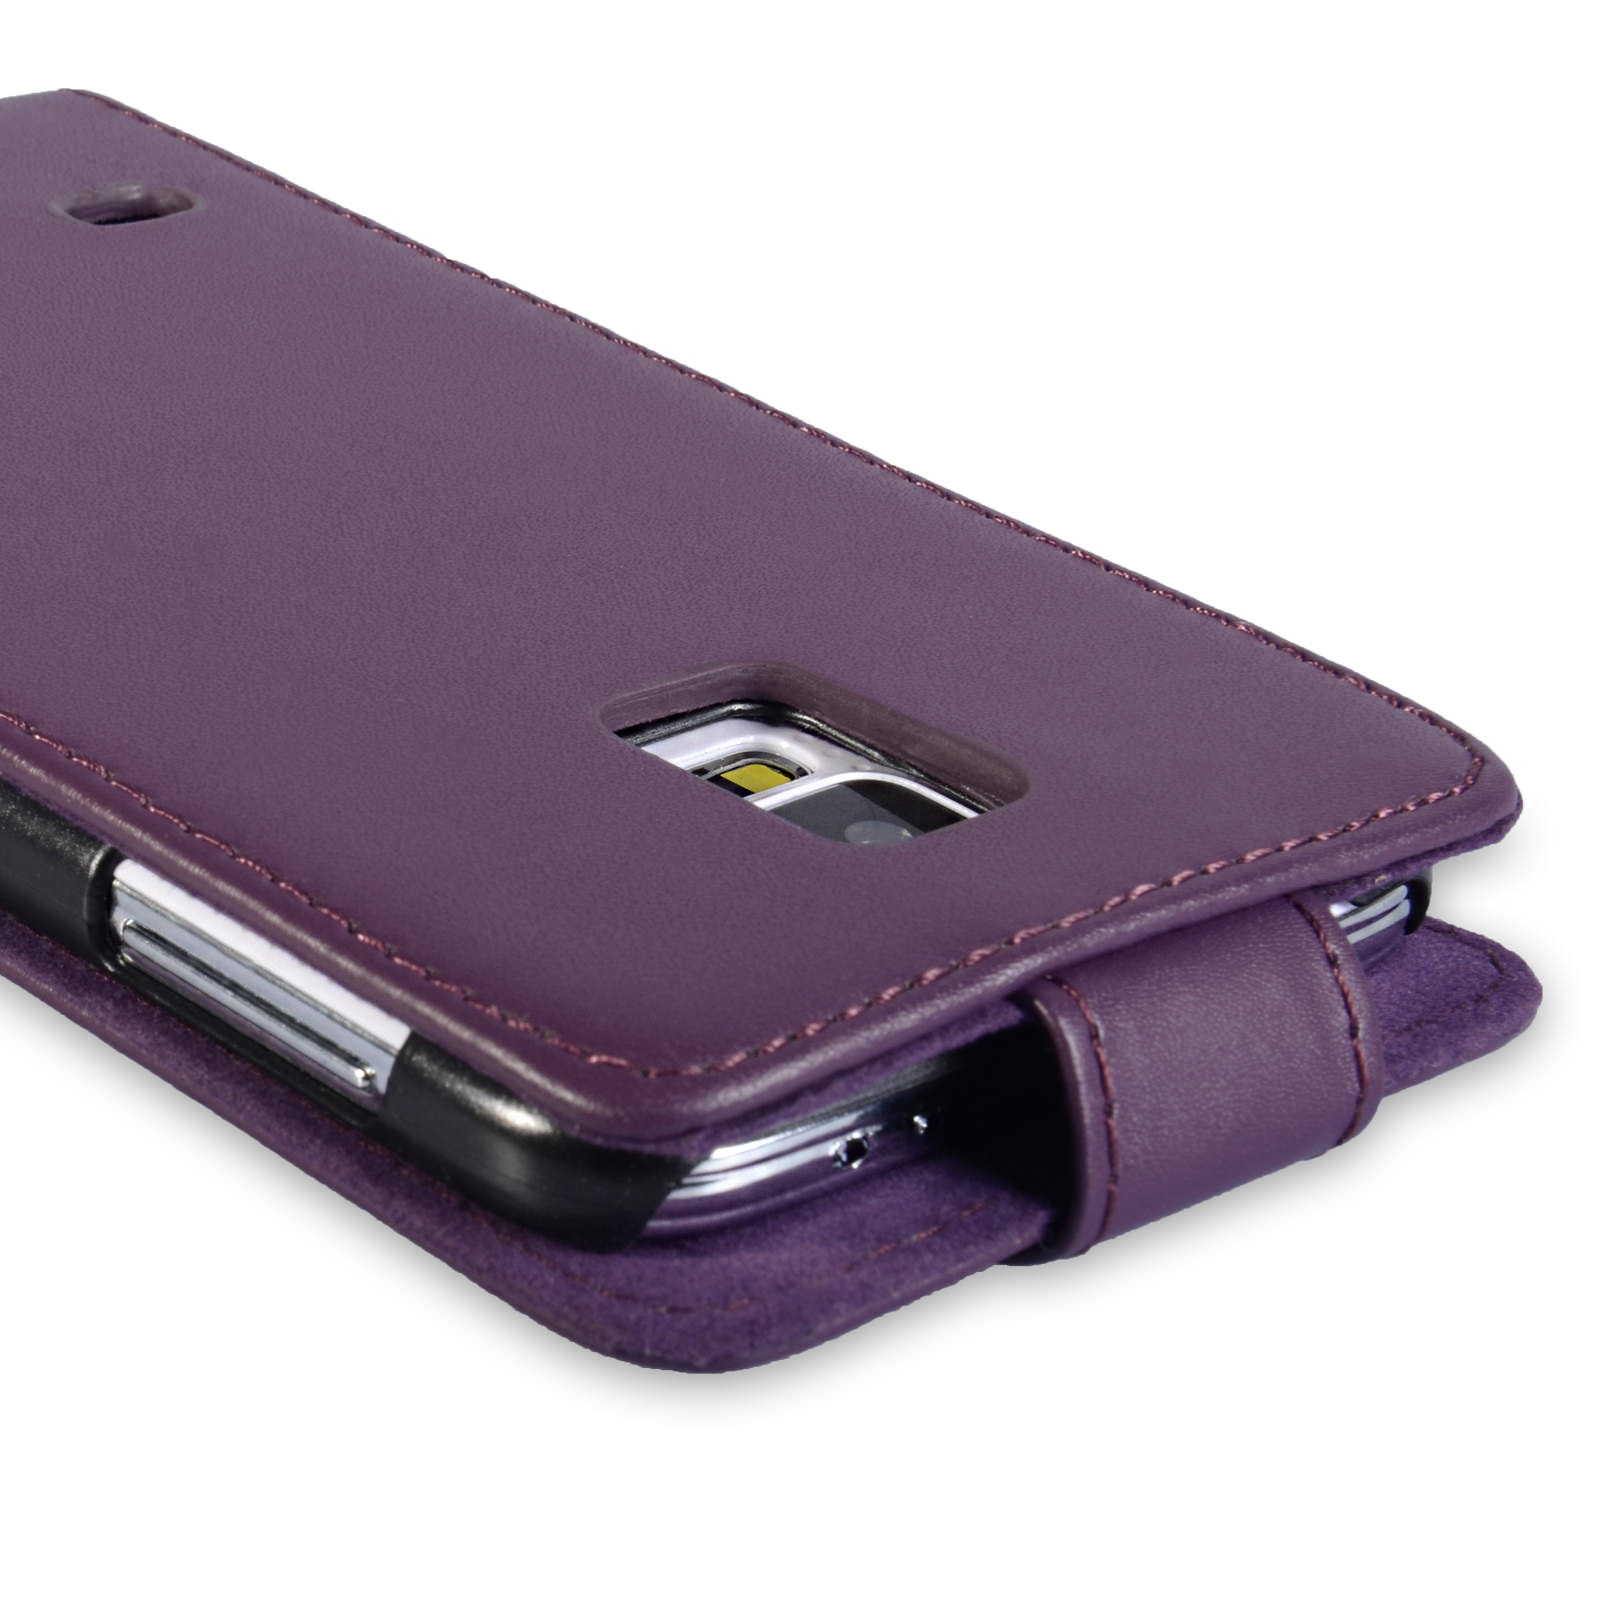 YouSave Samsung Galaxy S5 Leather-Effect Flip Case - Purple